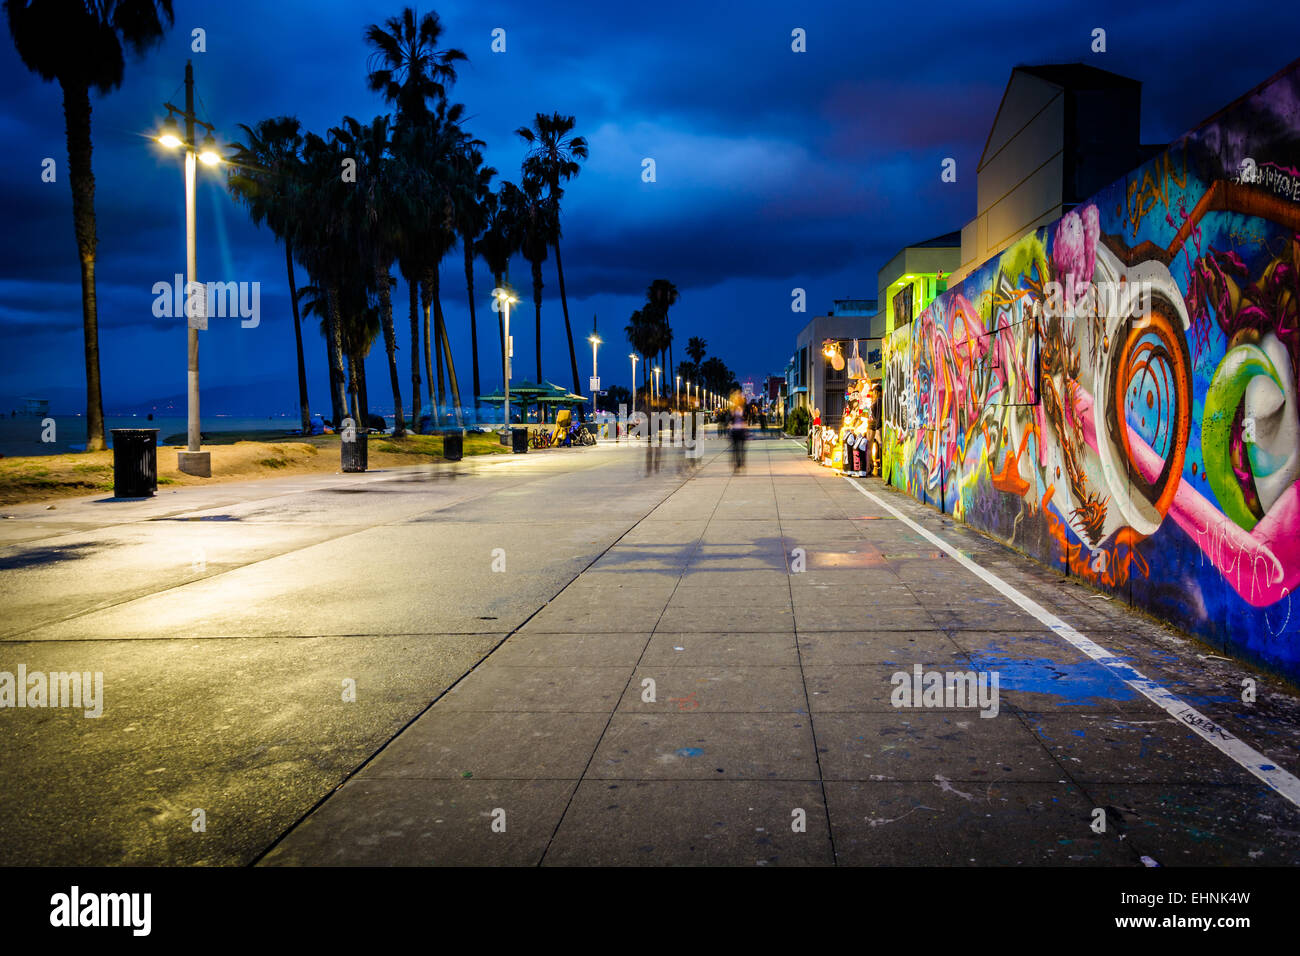 Venice beach boardwalk at night